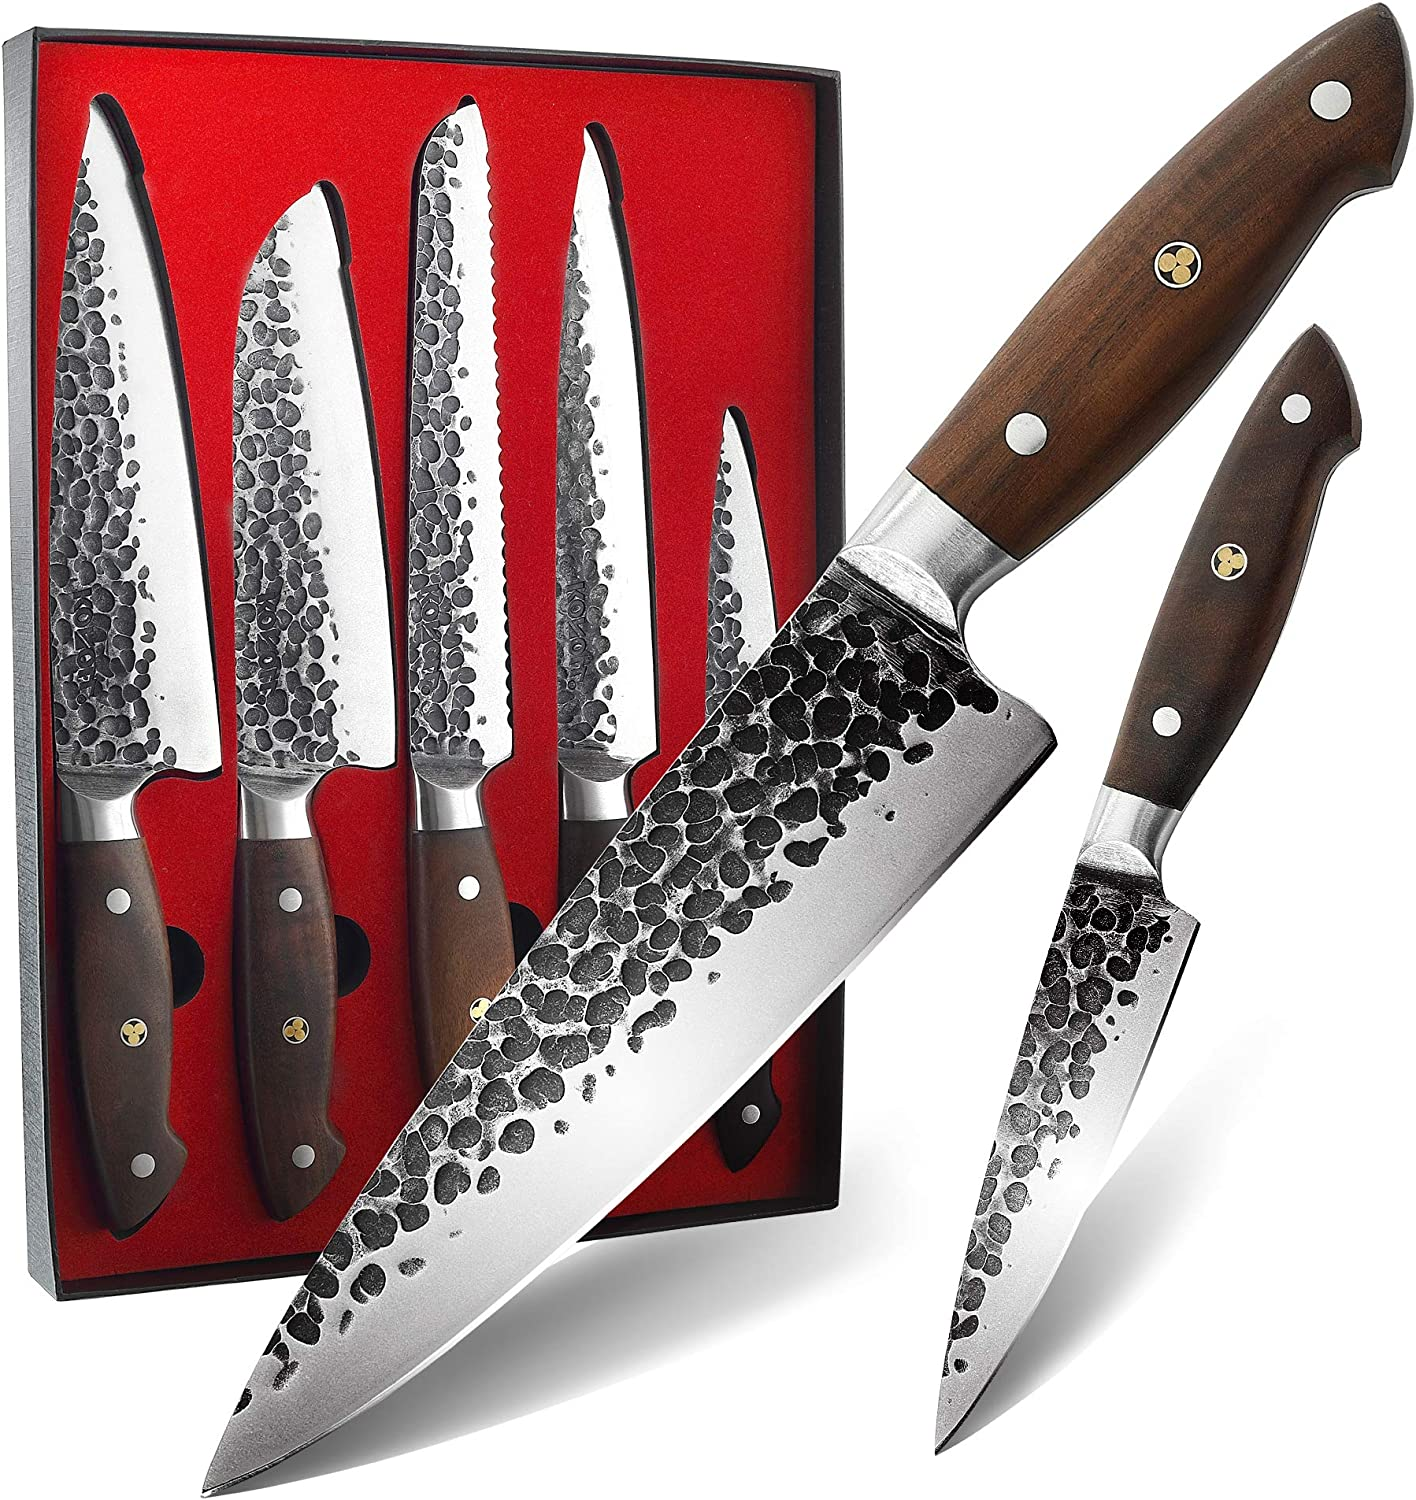 KONOLL Boxed Knife Max 85% OFF Set 5 Store Knives Kitchen Se Chef Piece